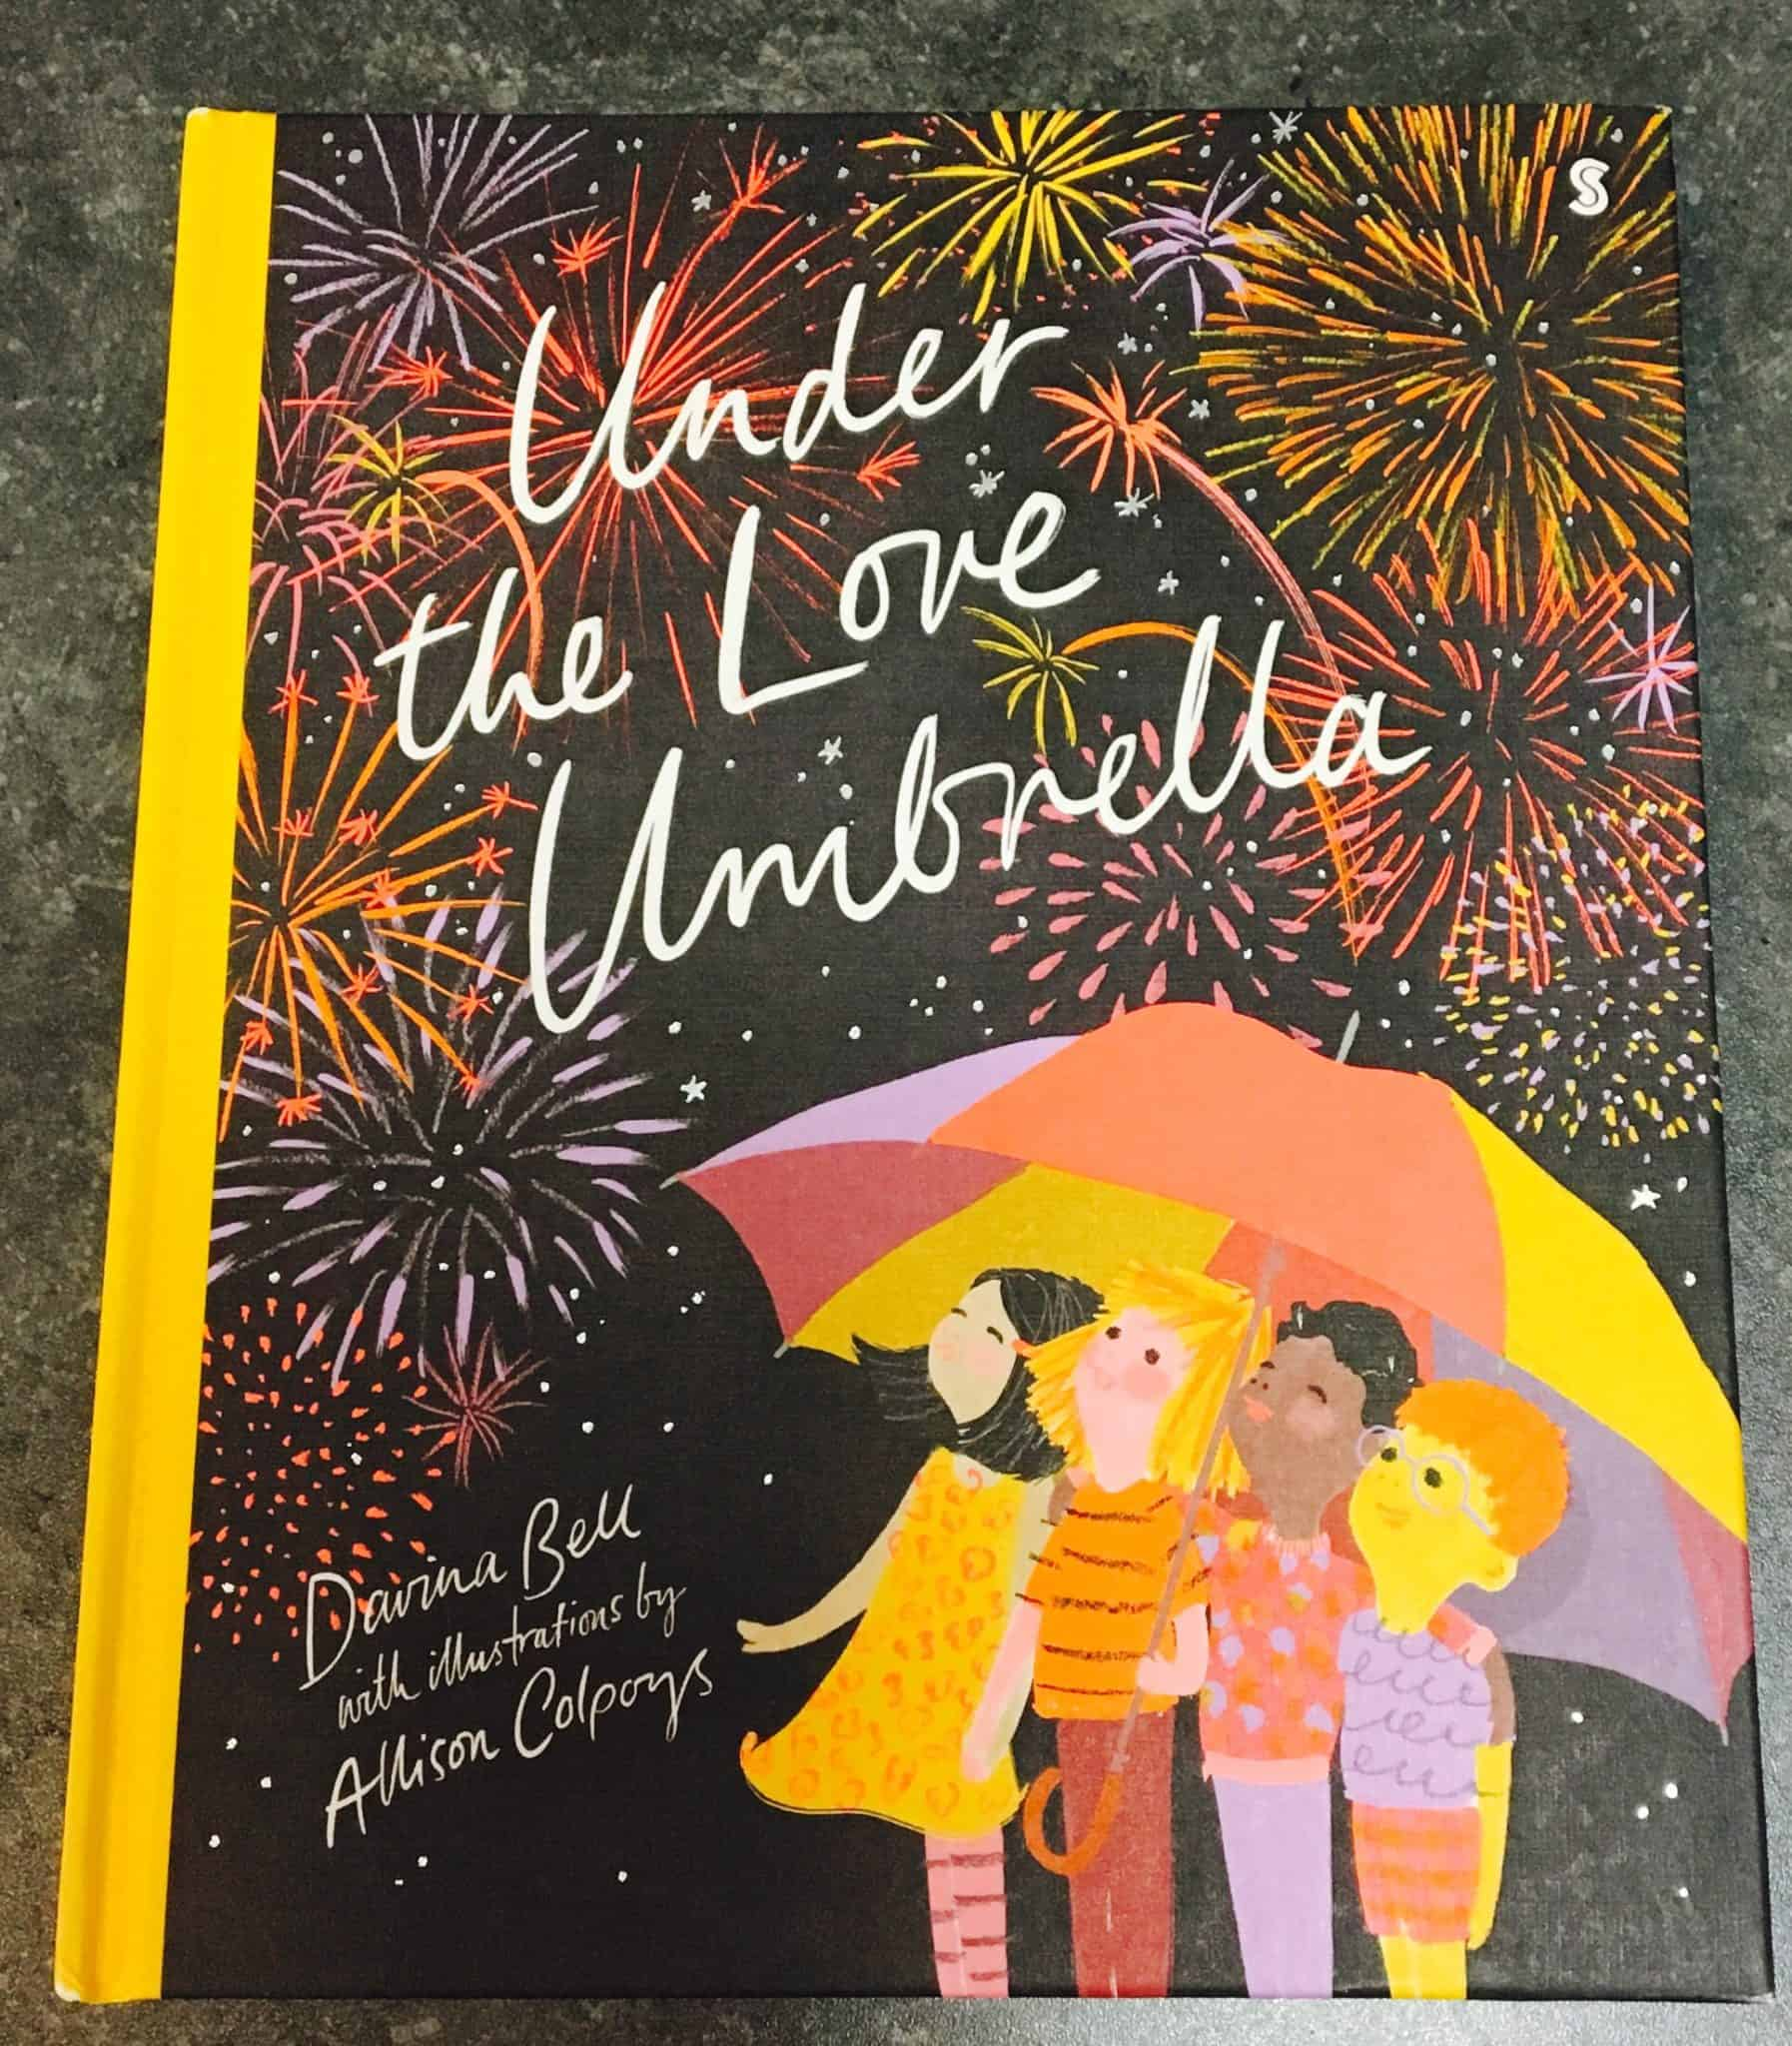 Book Review & Giveaway - Under the Love Umbrella